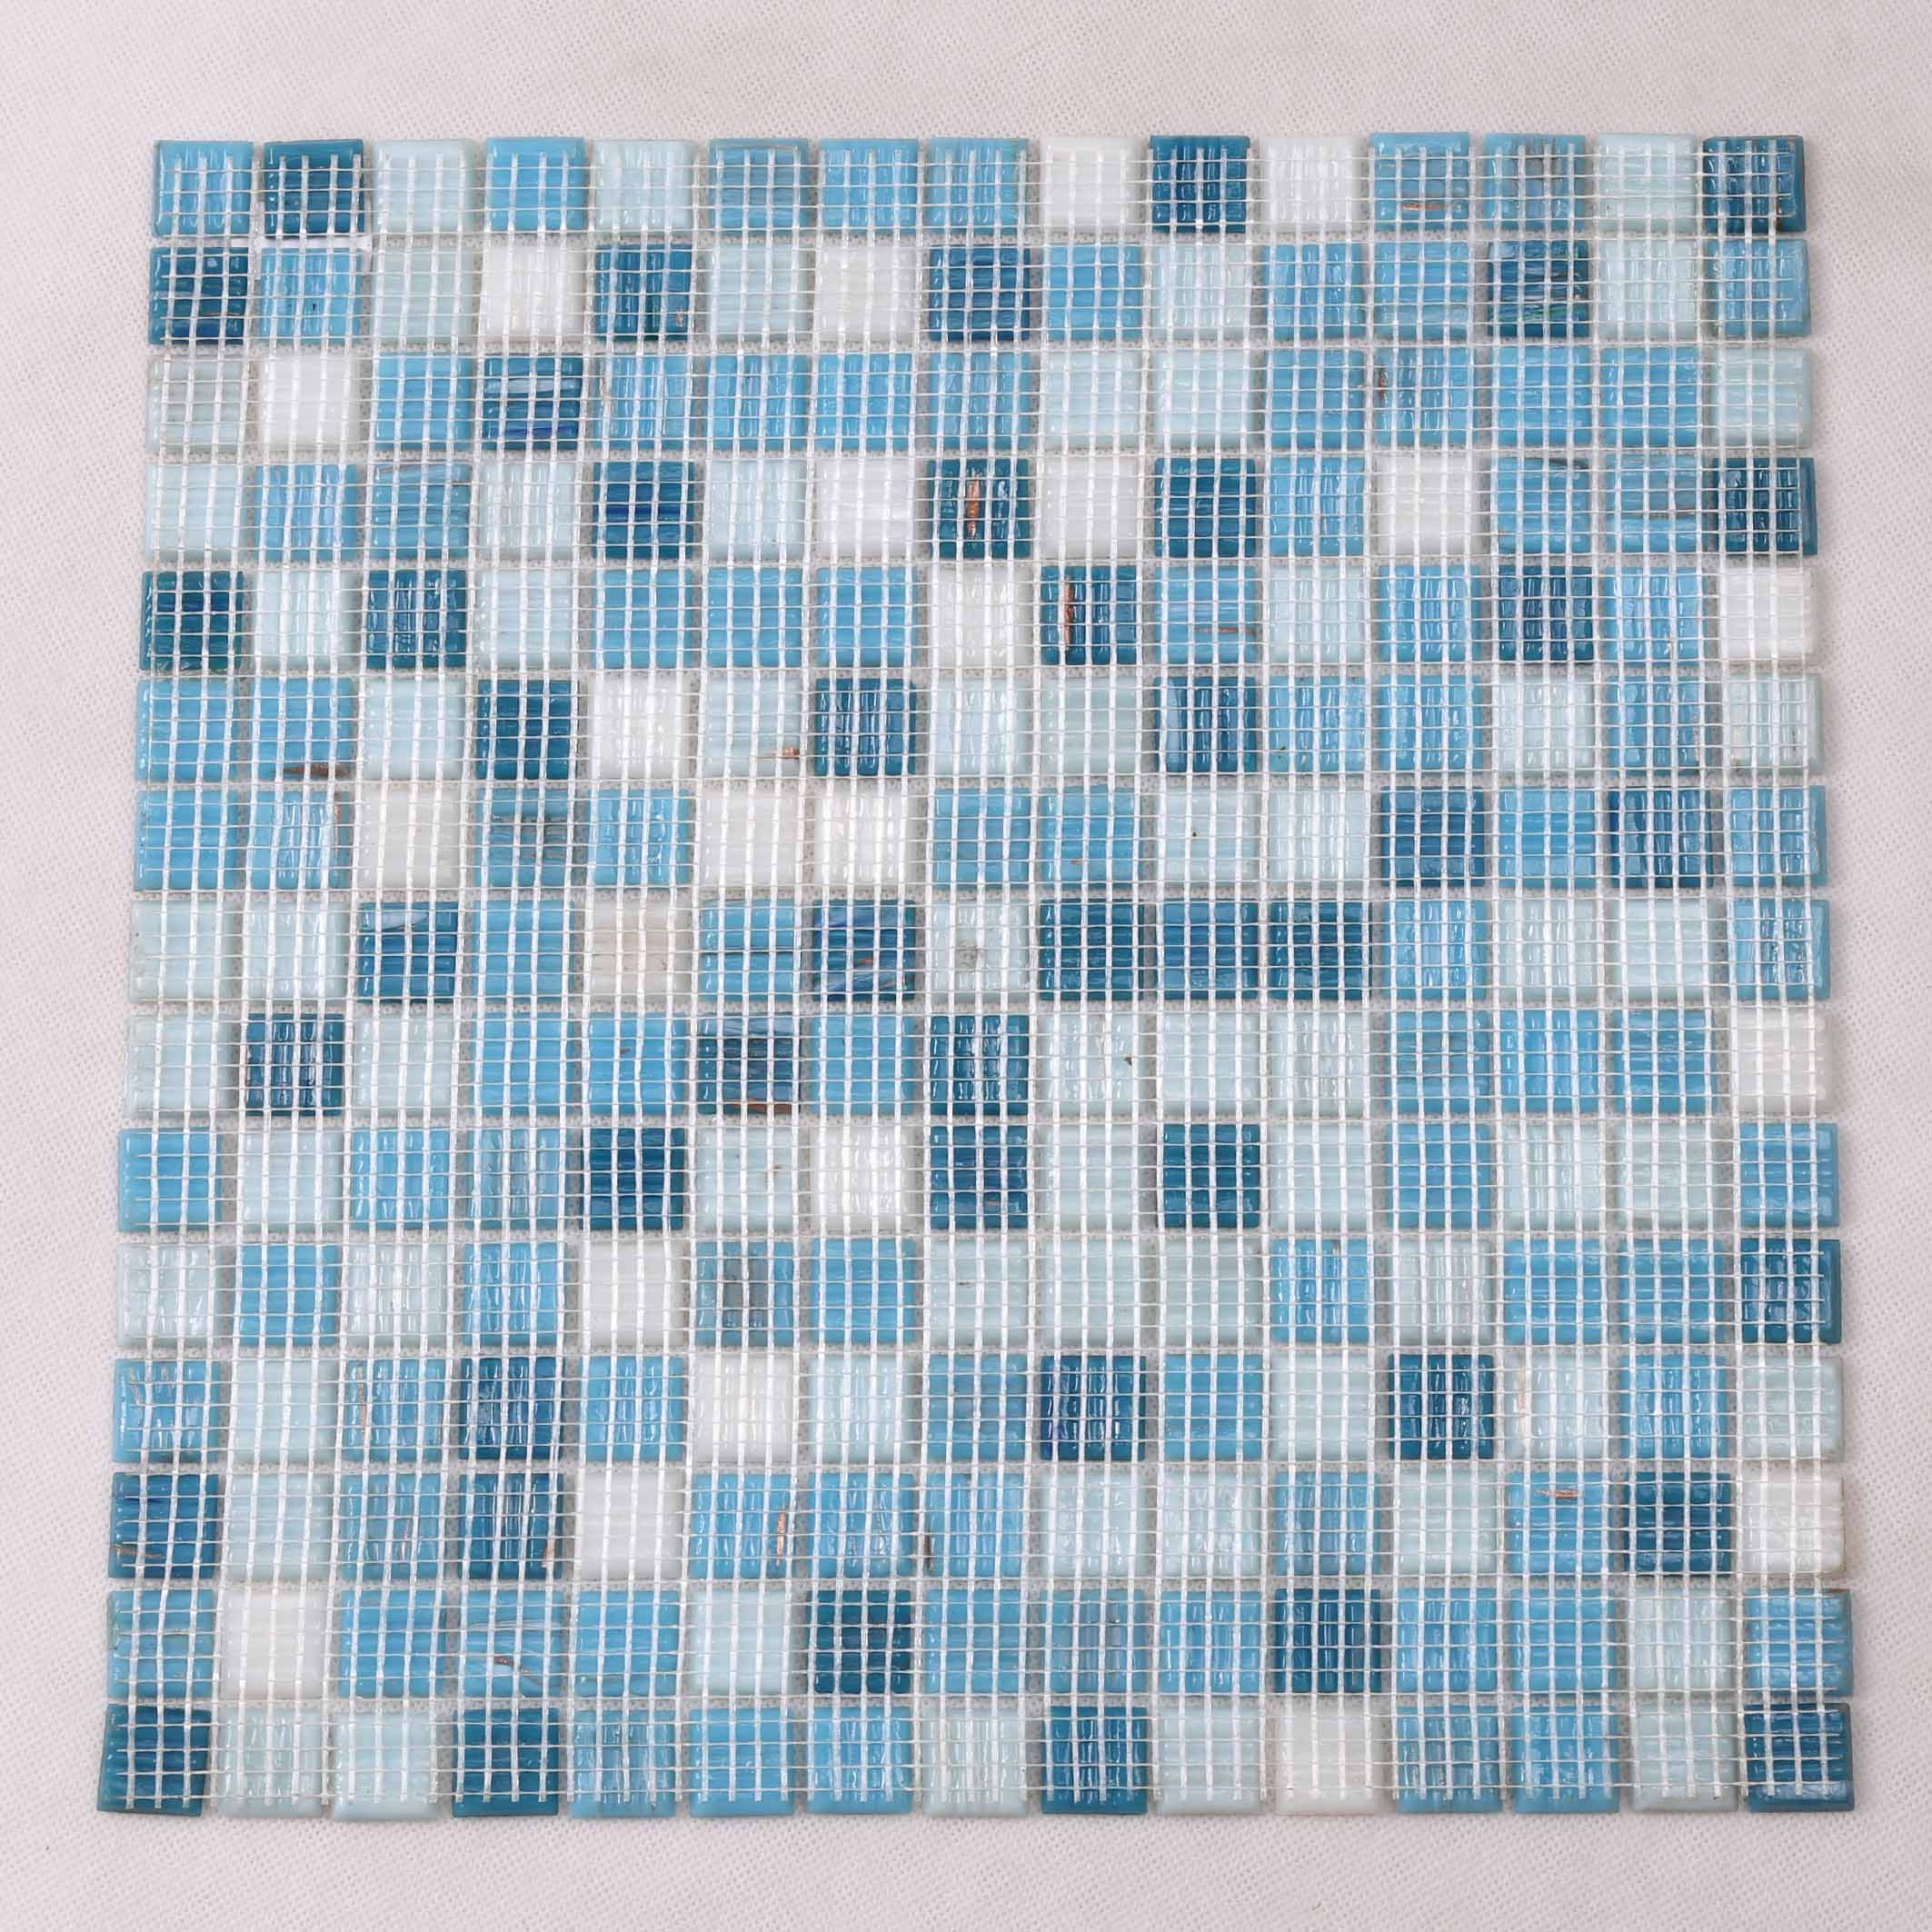 Heng Xing luxury blue pool tile personalized for bathroom-5